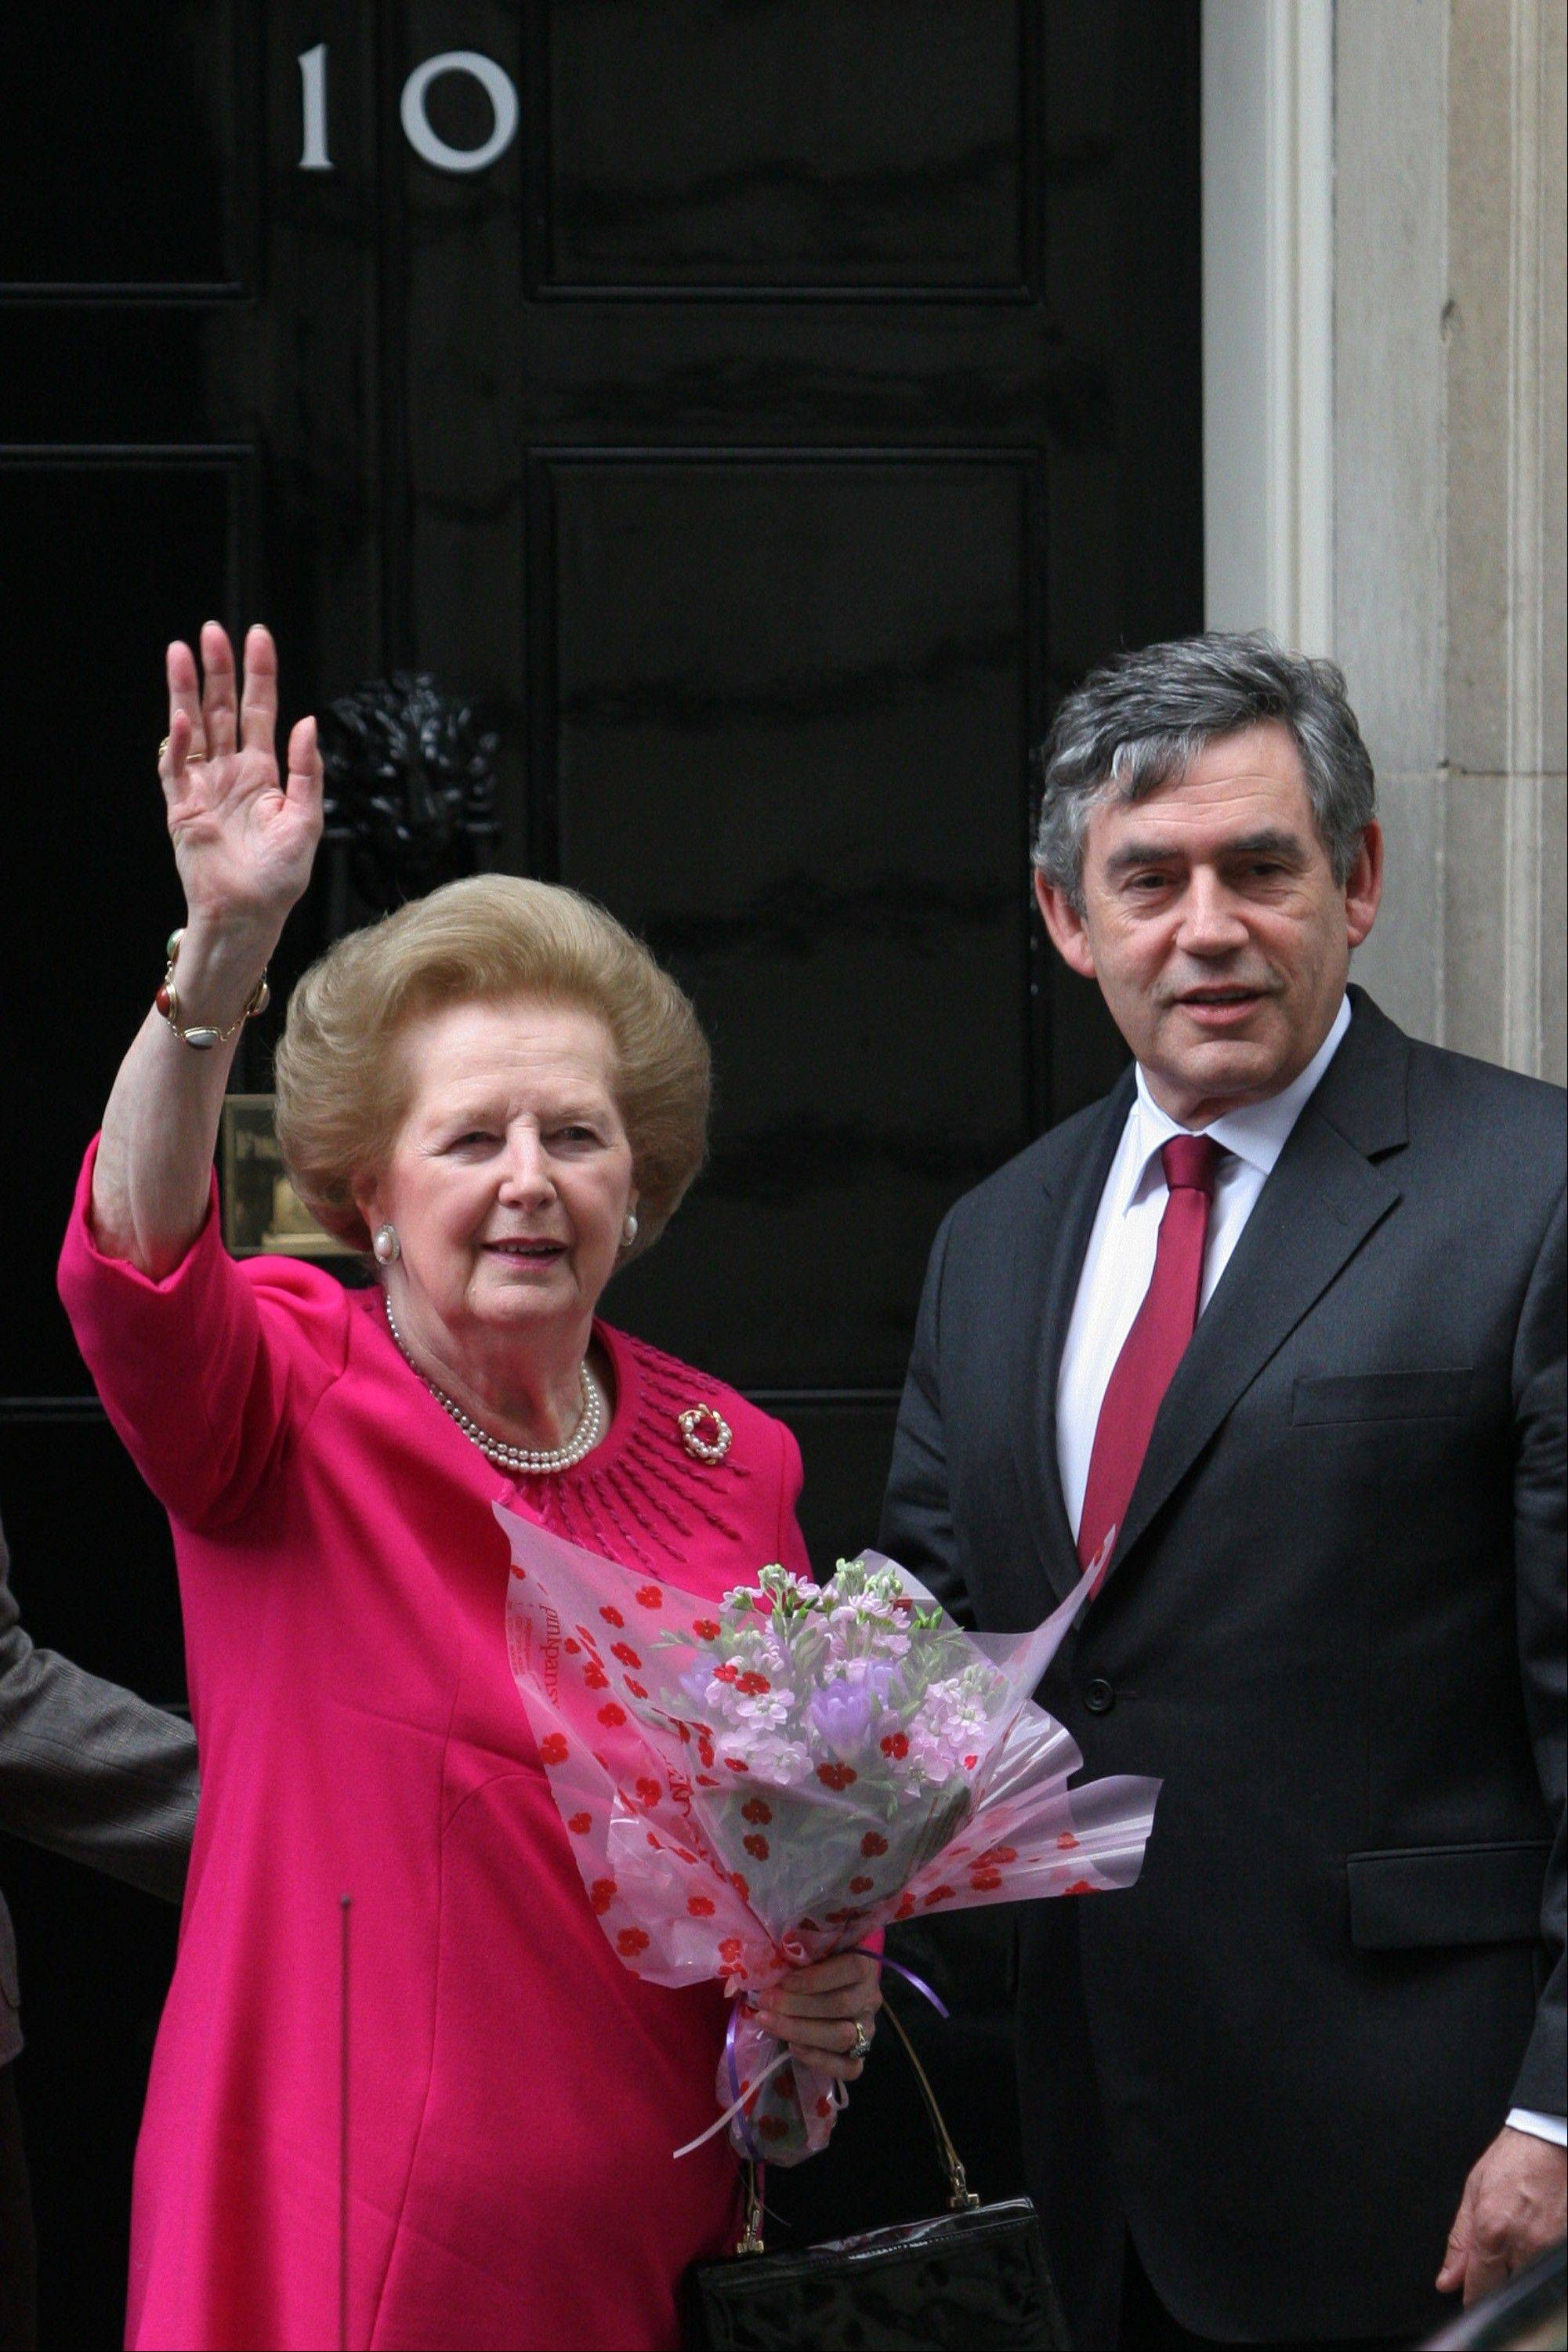 Margaret Thatcher, the former U.K. prime minister, waves as she leaves number 10 Downing Street after a meeting with Gordon Brown, the current U.K. prime minister in London, U.K., on Thursday, Sept. 13, 2007. Thatcher, the former U.K. prime minister who helped end the Cold War and was known as the �Iron Lady� for her uncompromising style, died today. She was 87.